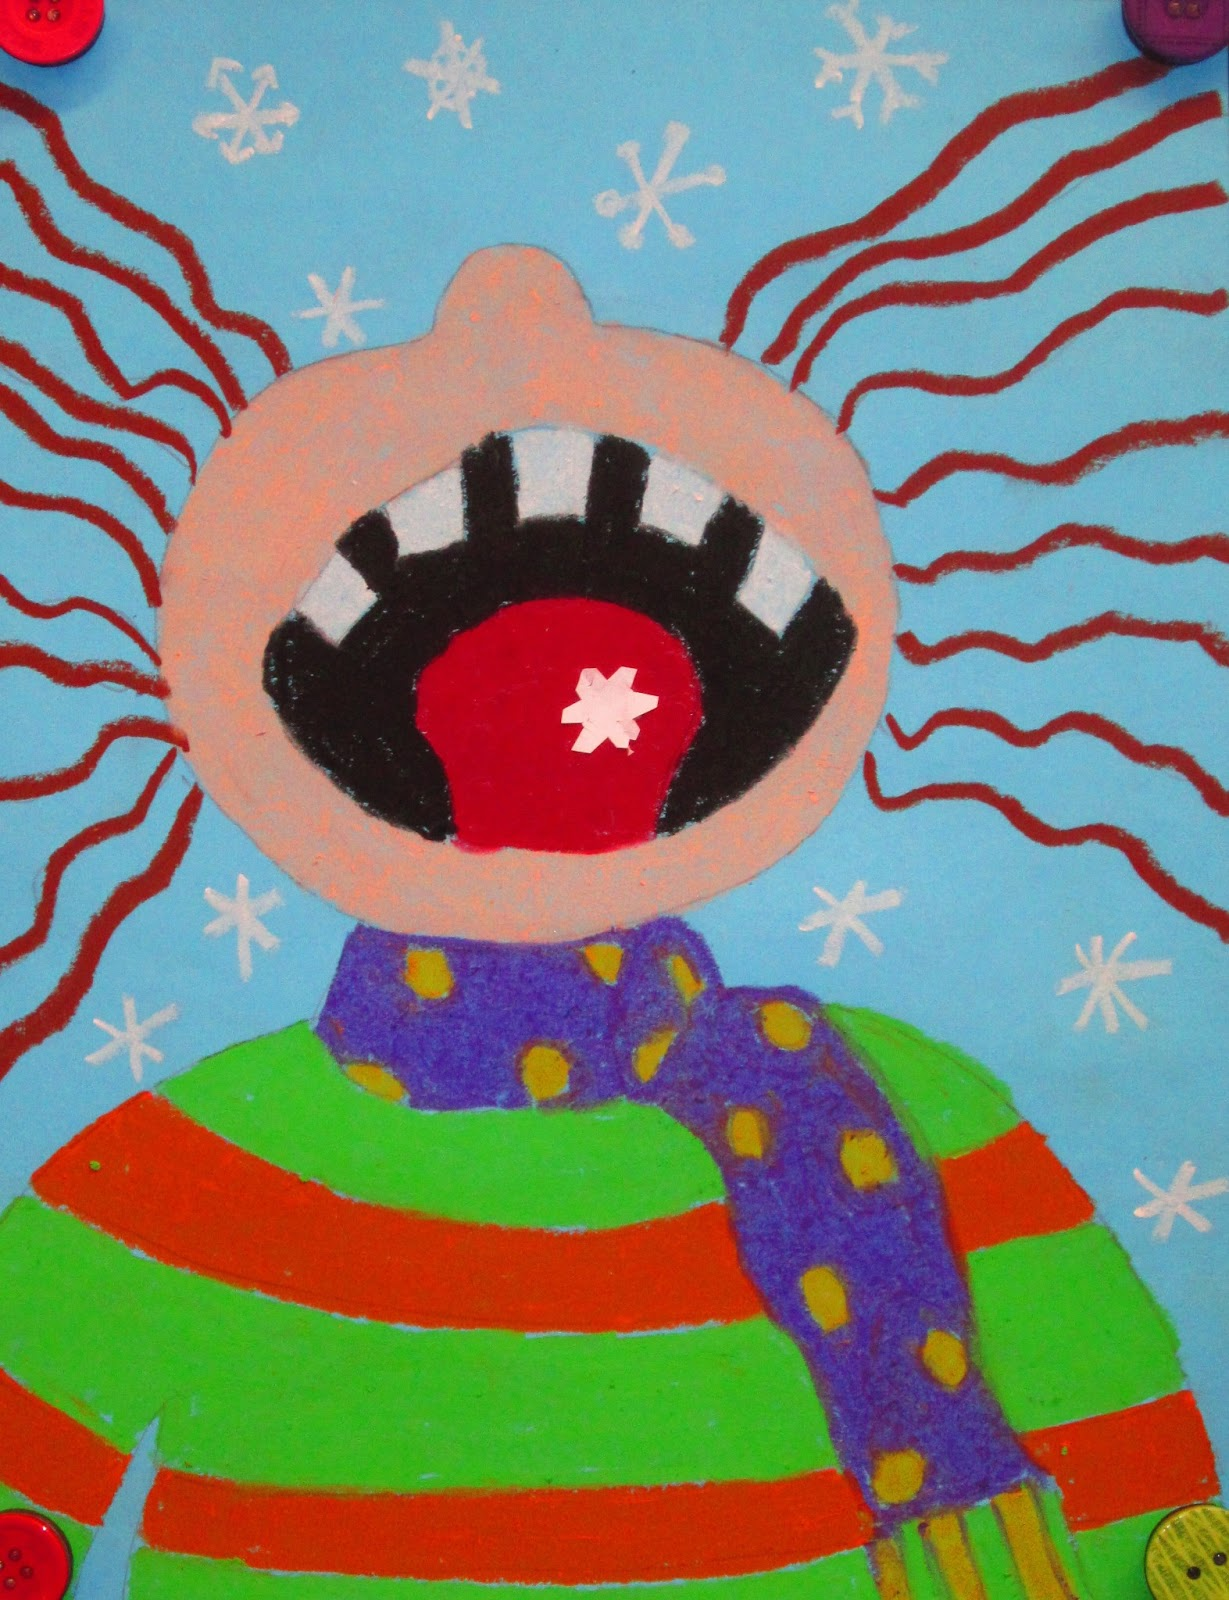 Friday Art Feature - Catching Snowflakes | RUNDE'S ROOM